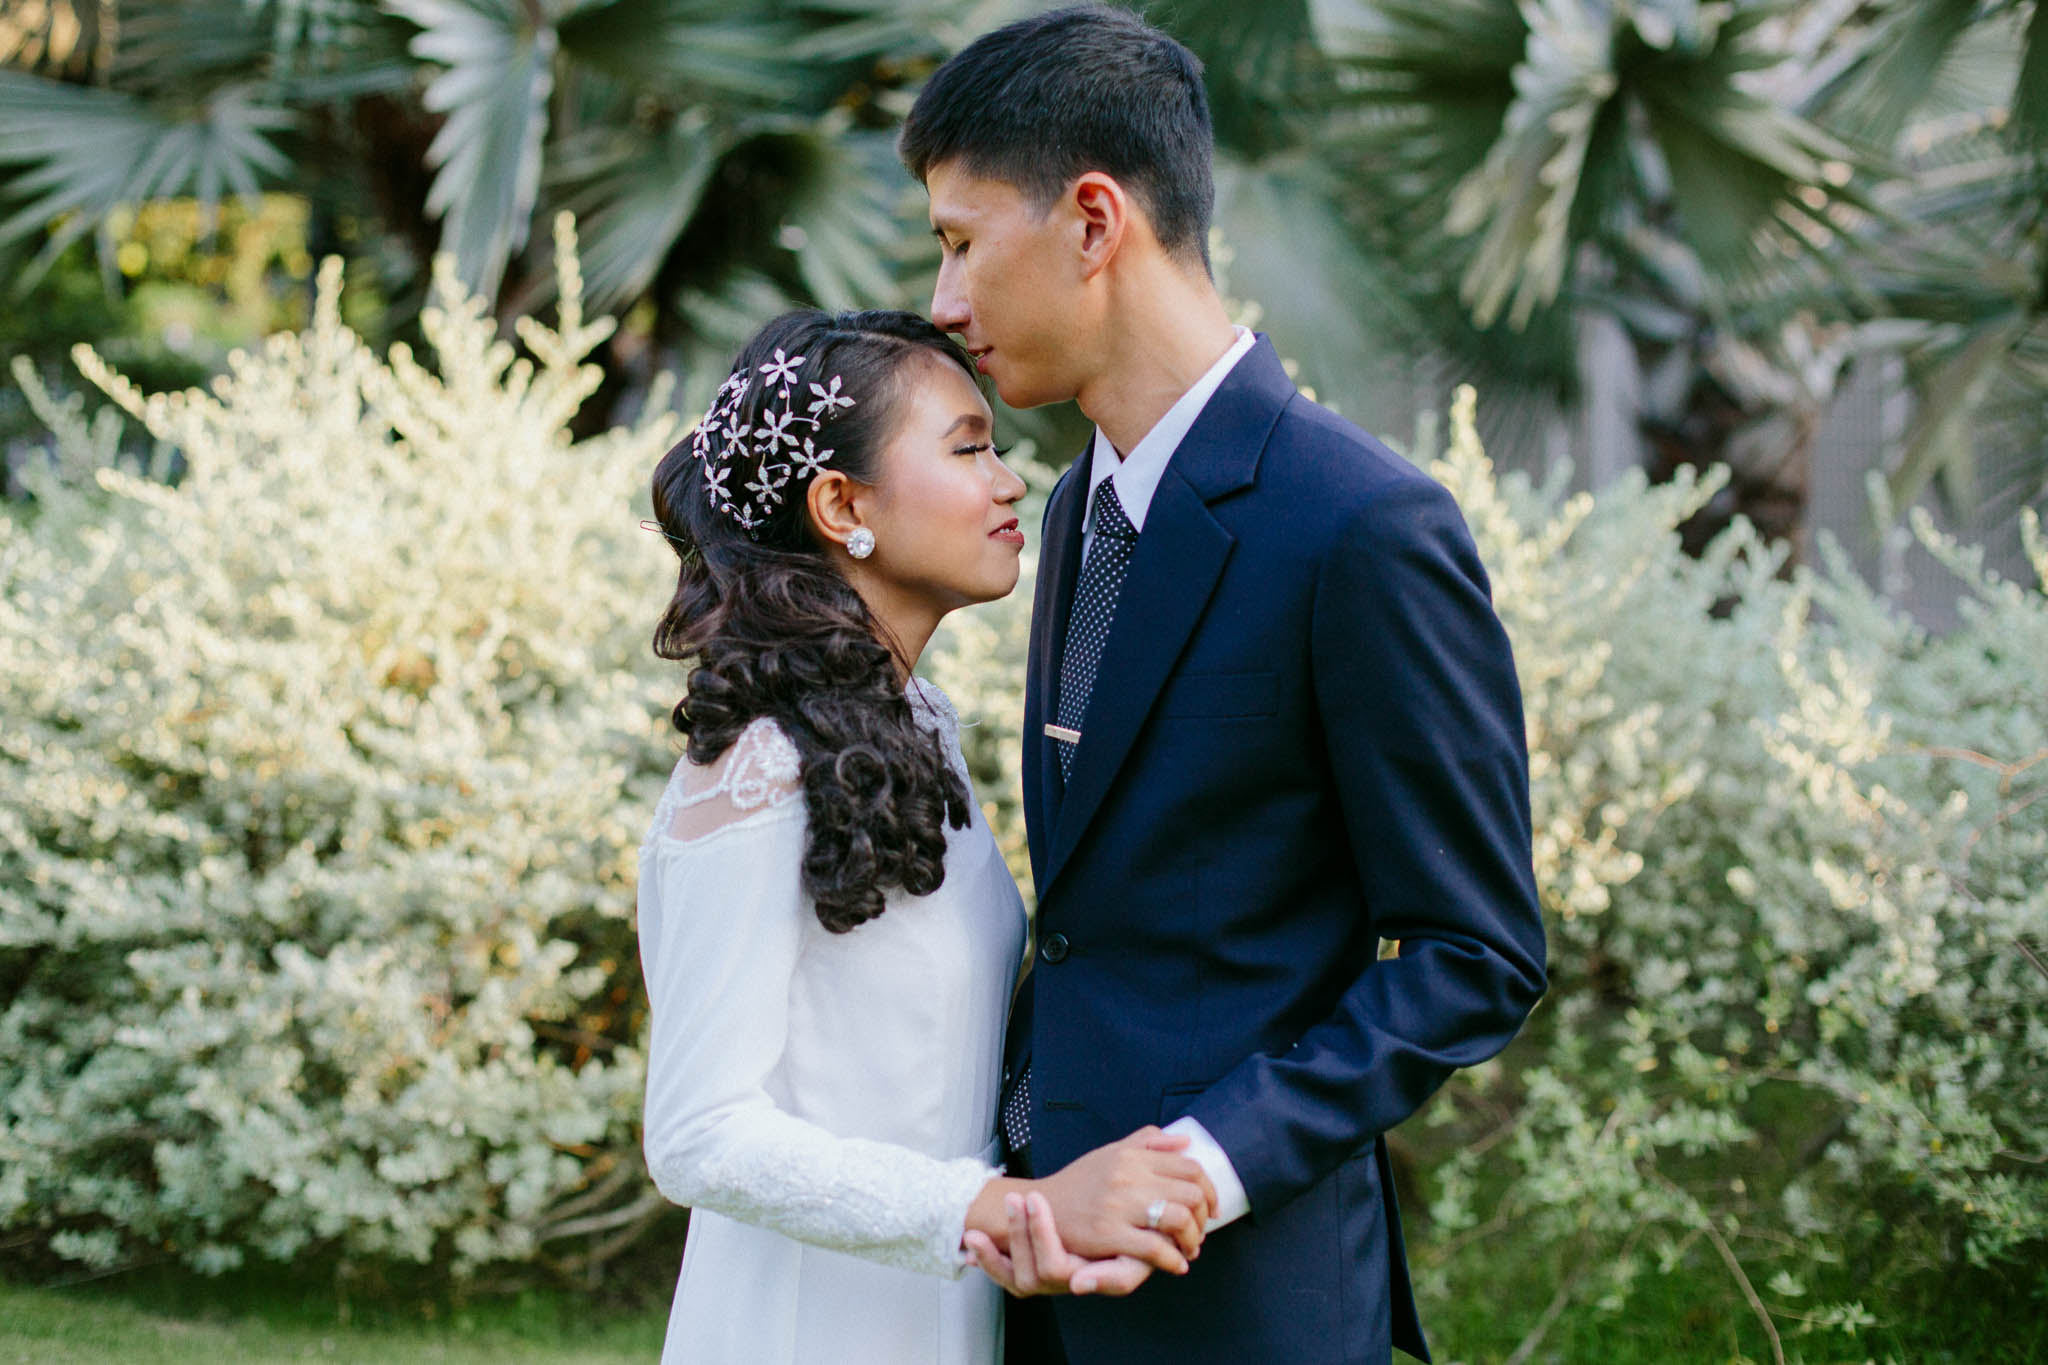 singapore-wedding-photographer-wedding-halimah-muhsin-056.jpg